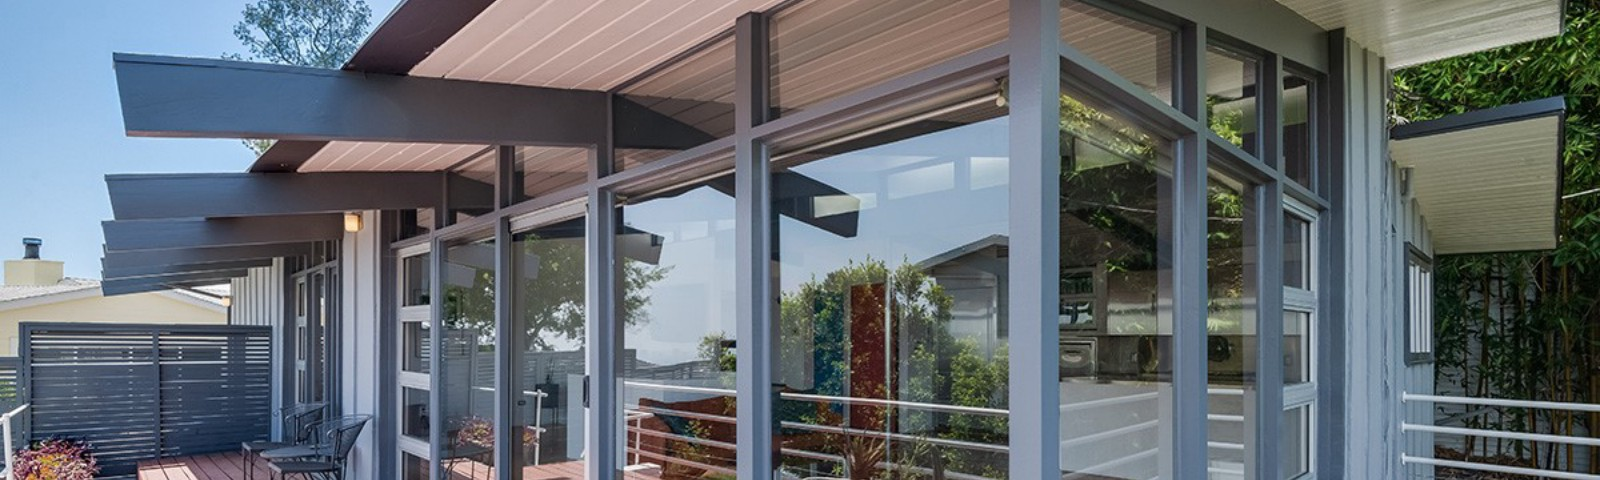 Floor to ceiling windows and pointed beams of a mid-century home in the San Fernando Valley.